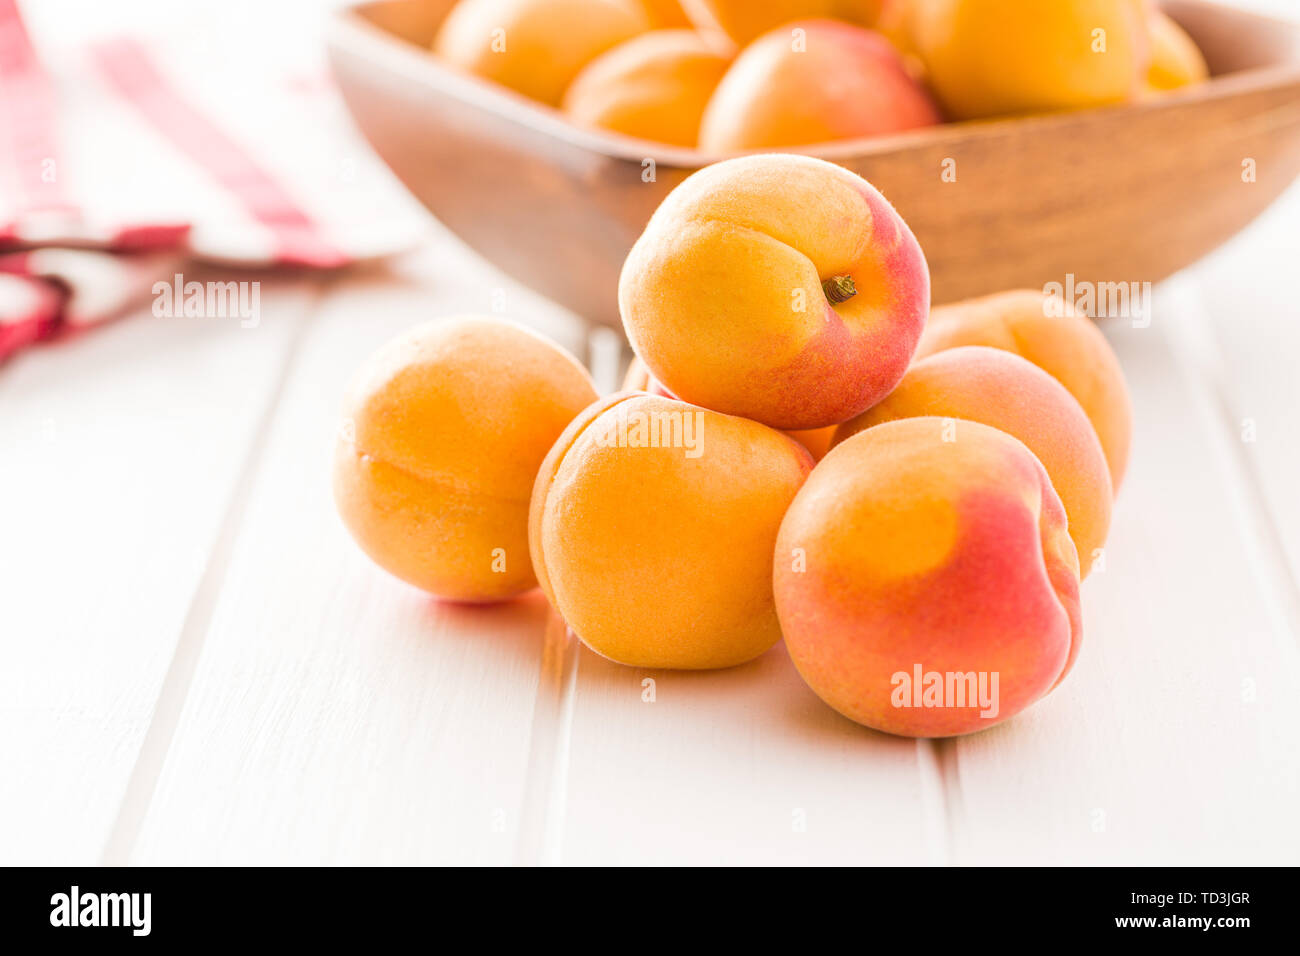 Sweet apricot fruits on white table. - Stock Image